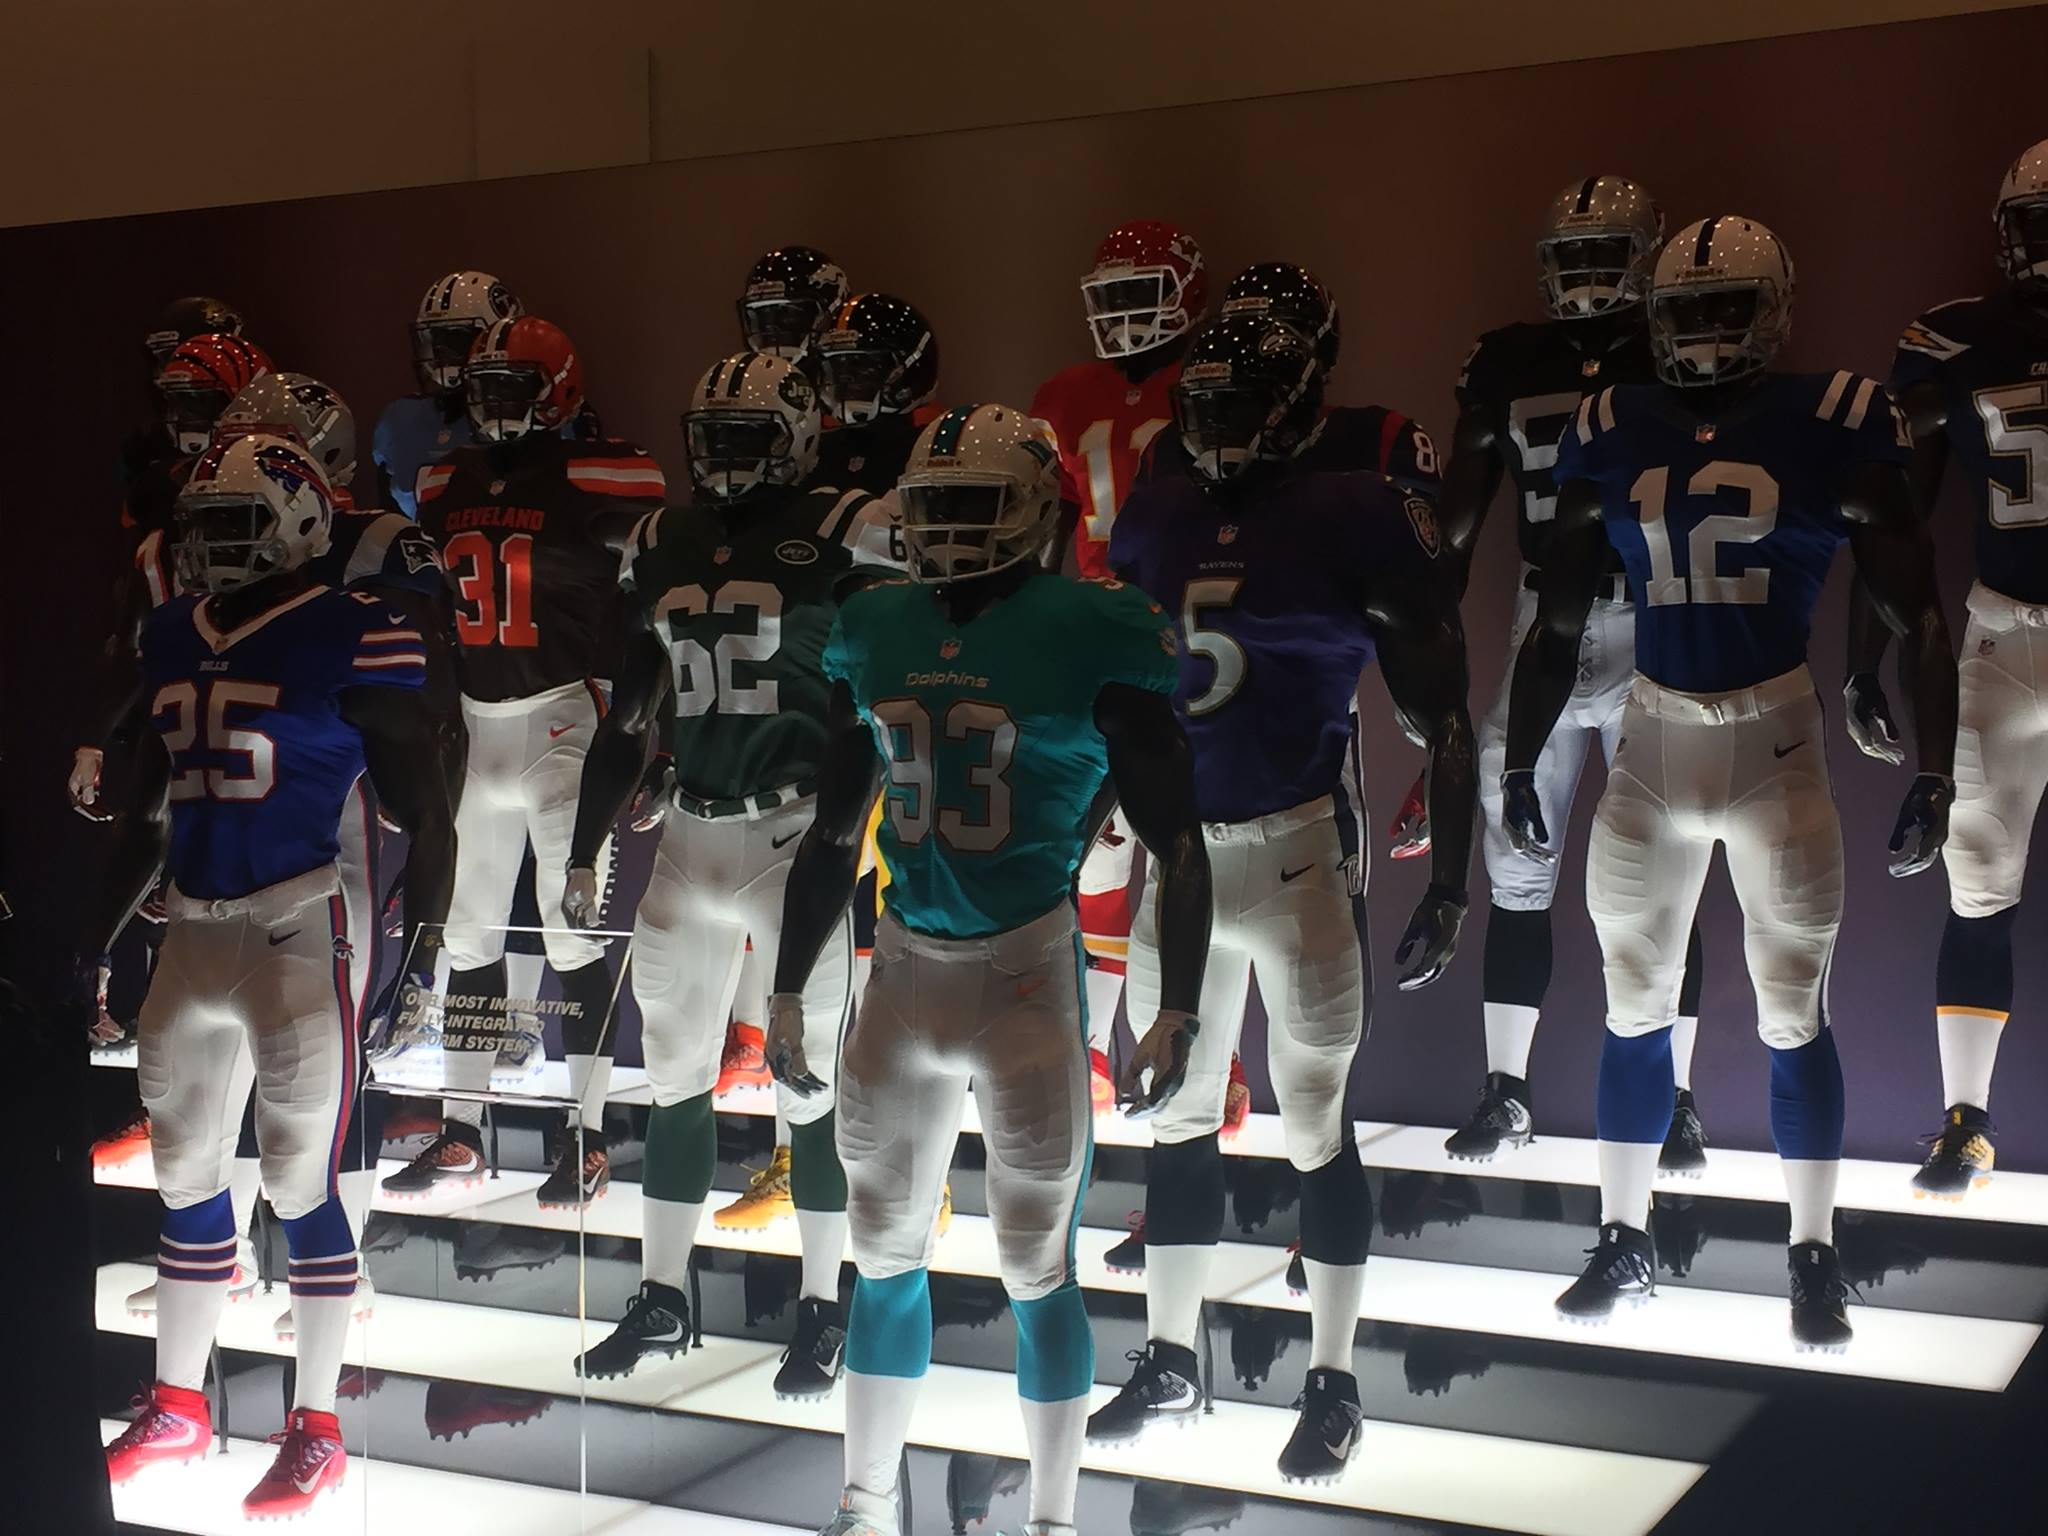 "<div class=""meta image-caption""><div class=""origin-logo origin-image none""><span>none</span></div><span class=""caption-text"">NFL jerseys on display at NFL Experience in San Francisco, Sunday, January 31, 2016. (KGO-TV)</span></div>"